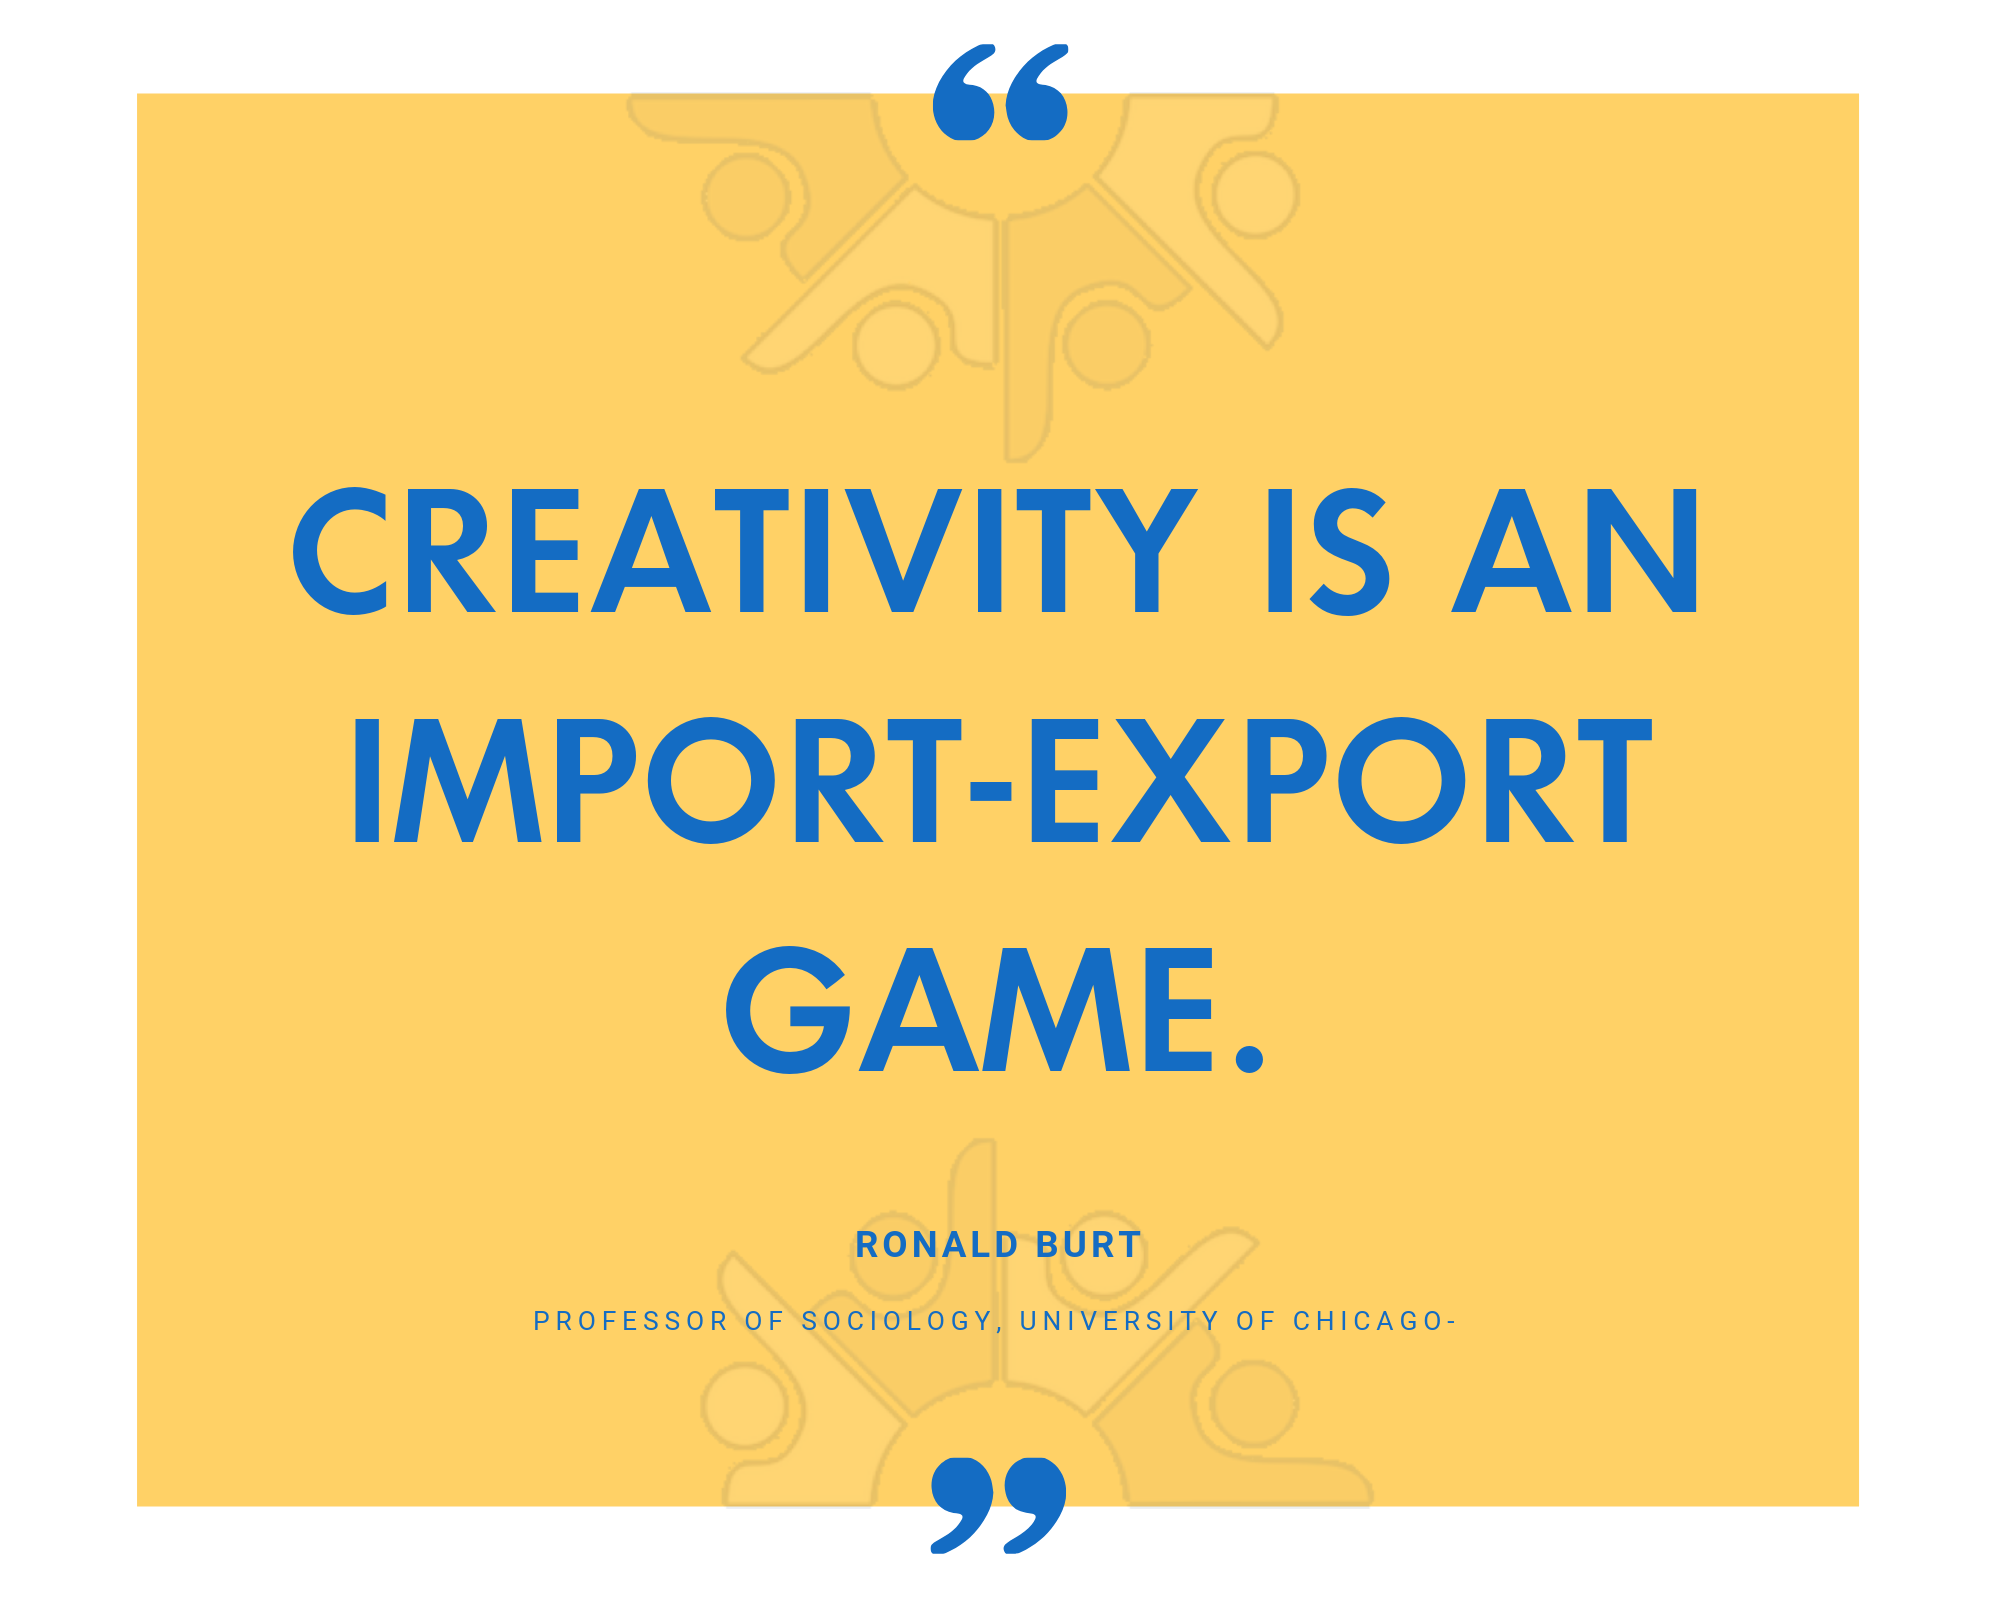 Creativity is an Import-Export Game